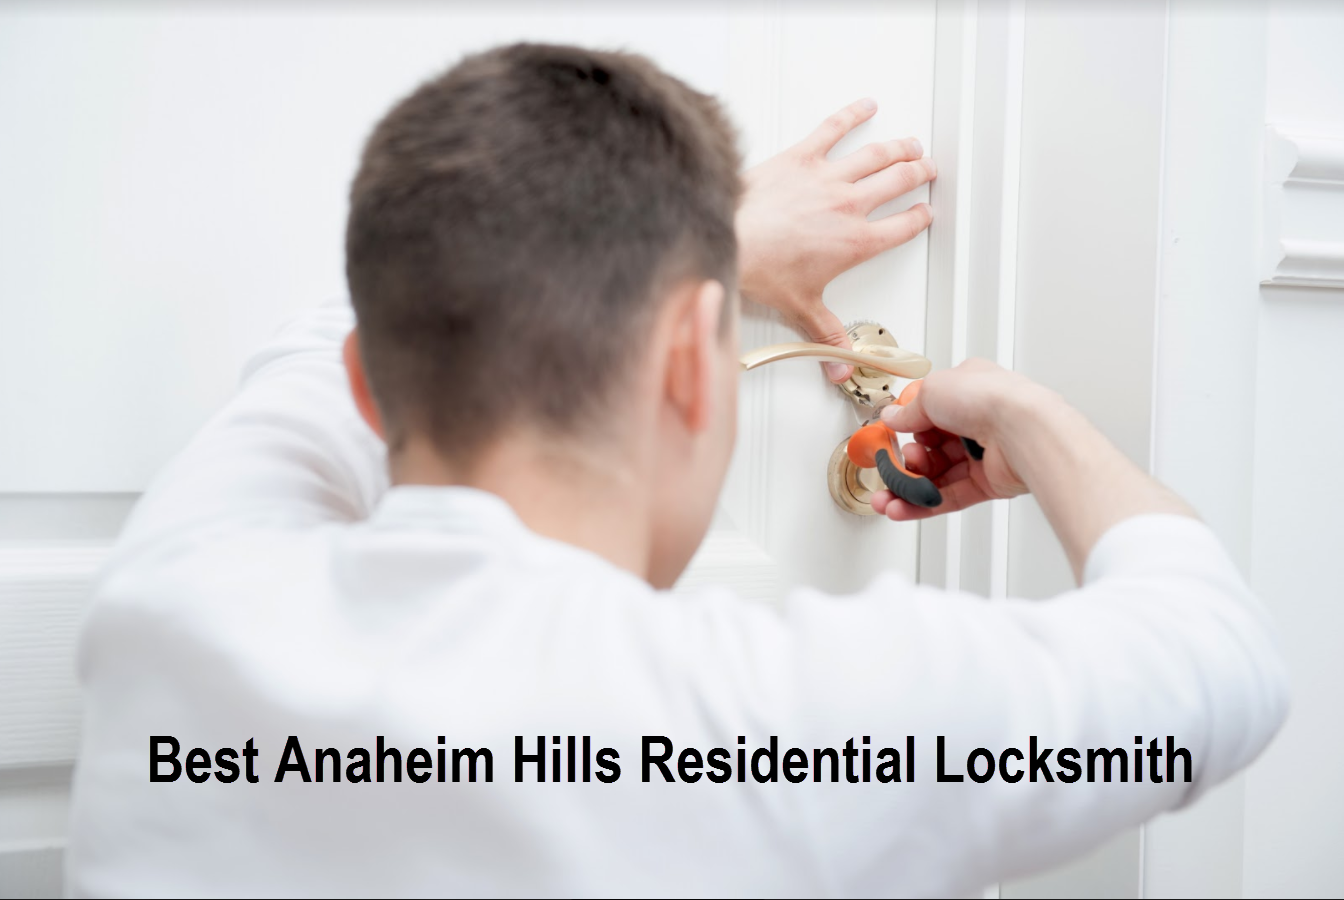 Best Anaheim Hills Residential Locksmith